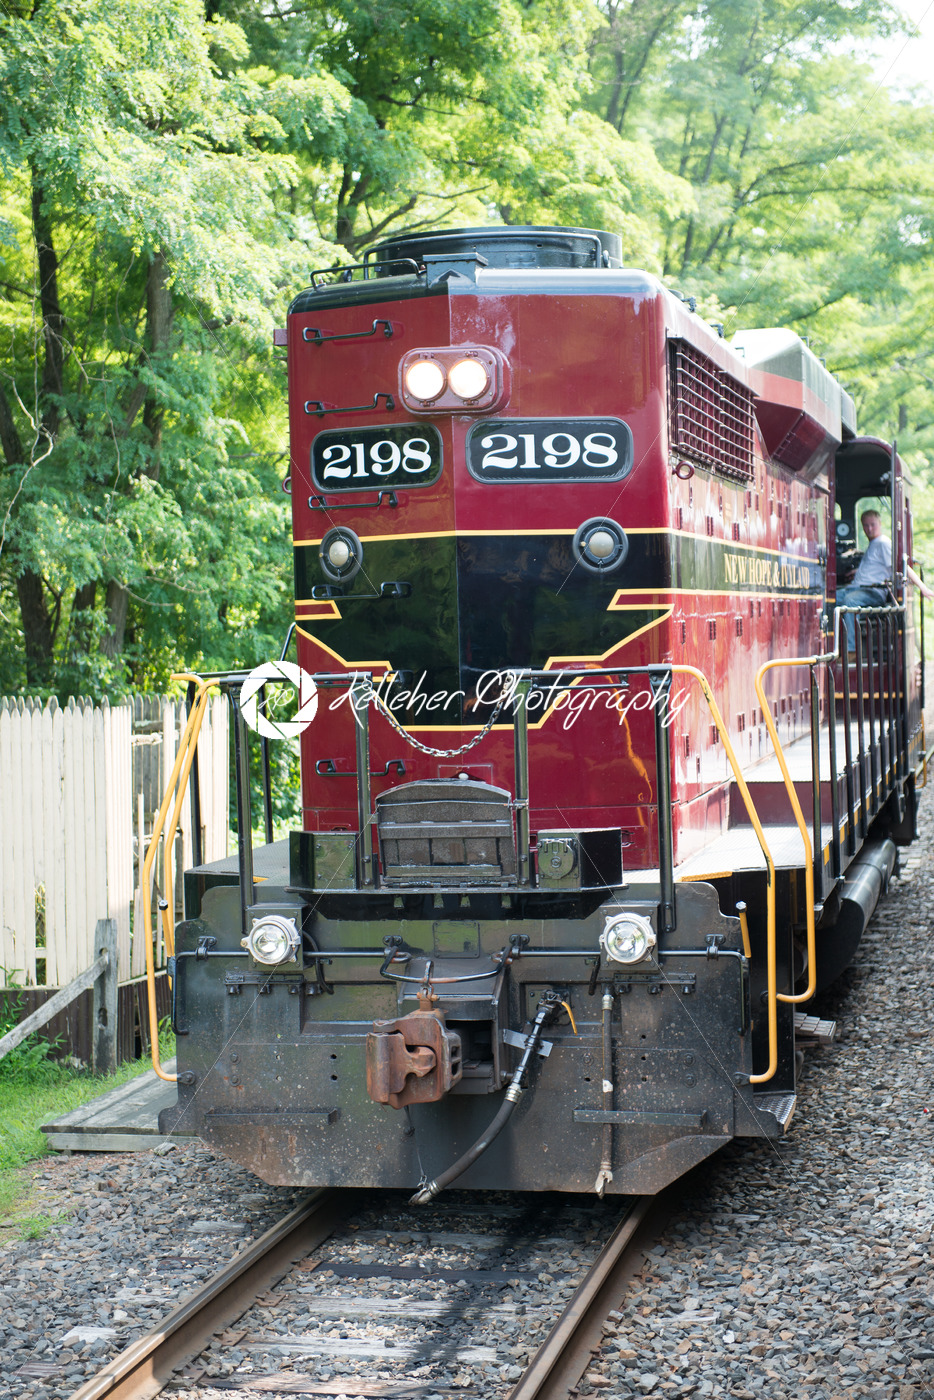 NEW HOPE, PA – AUGUST 11: The New Hope and Ivyland rail road is a heritage train line for visitors going on touristic excursions in Bucks County, Pennsylvania on August 11, 2013 - Kelleher Photography Store